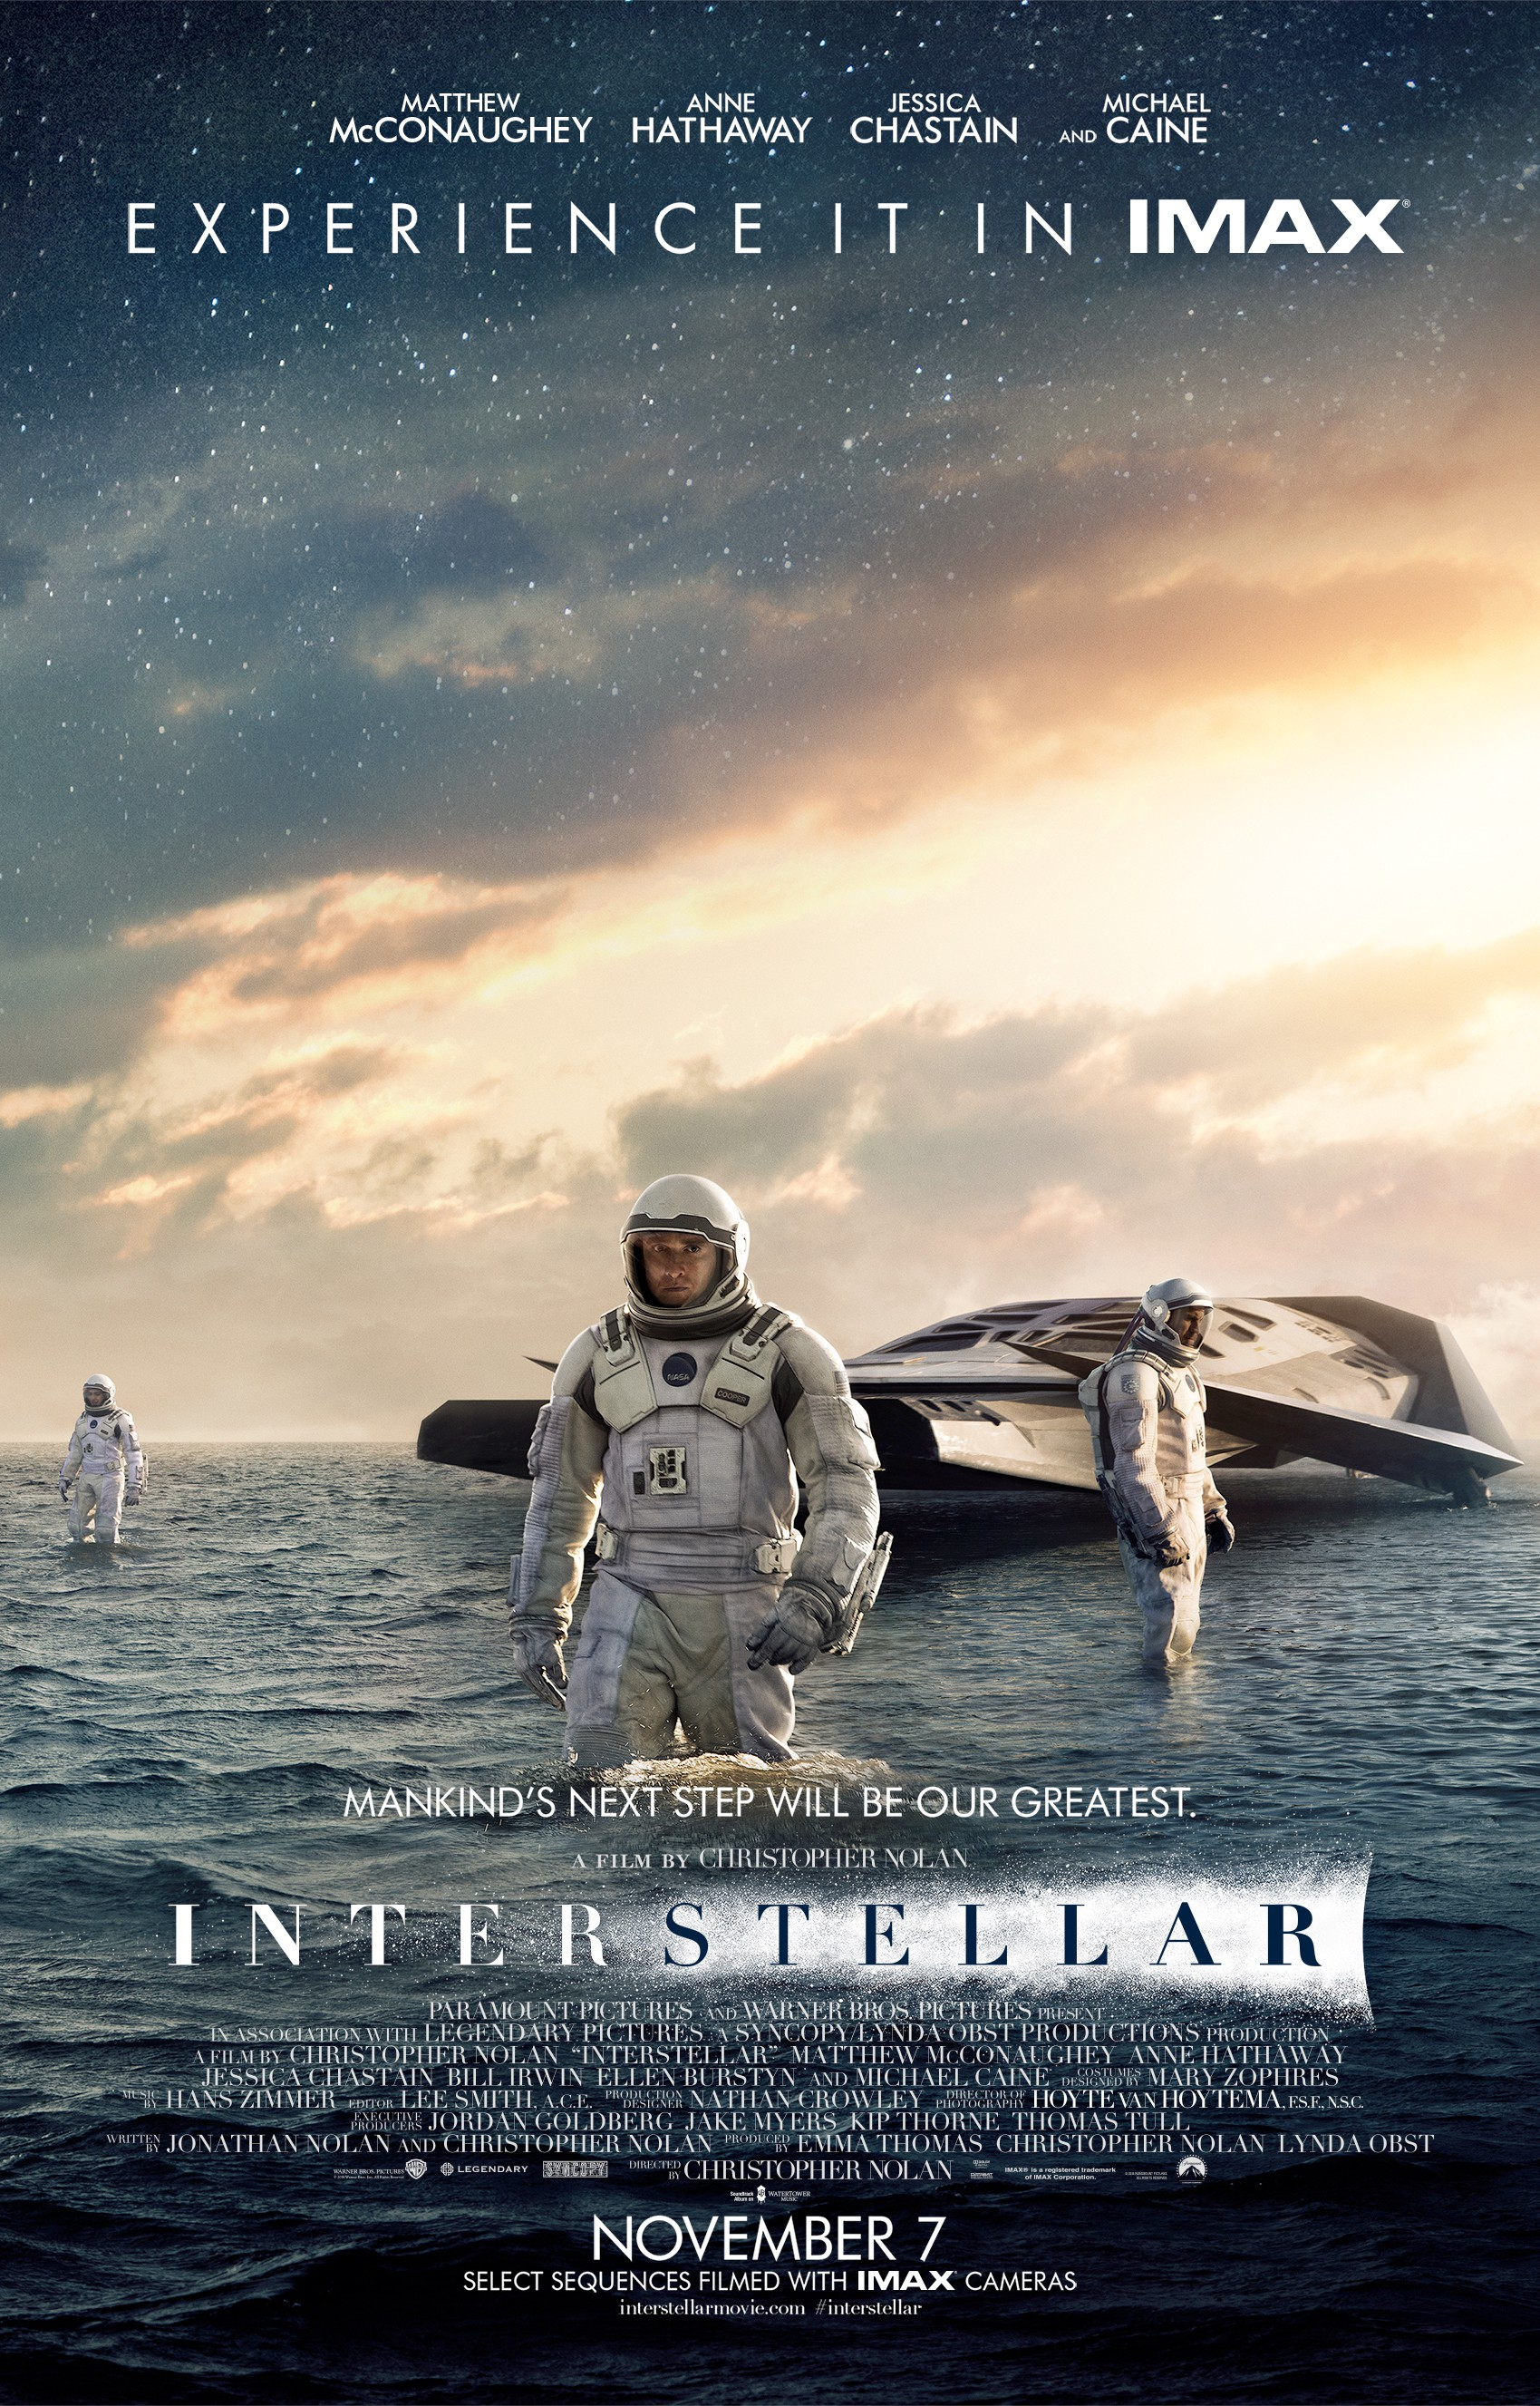 Interstellar poster / Интерстеллар